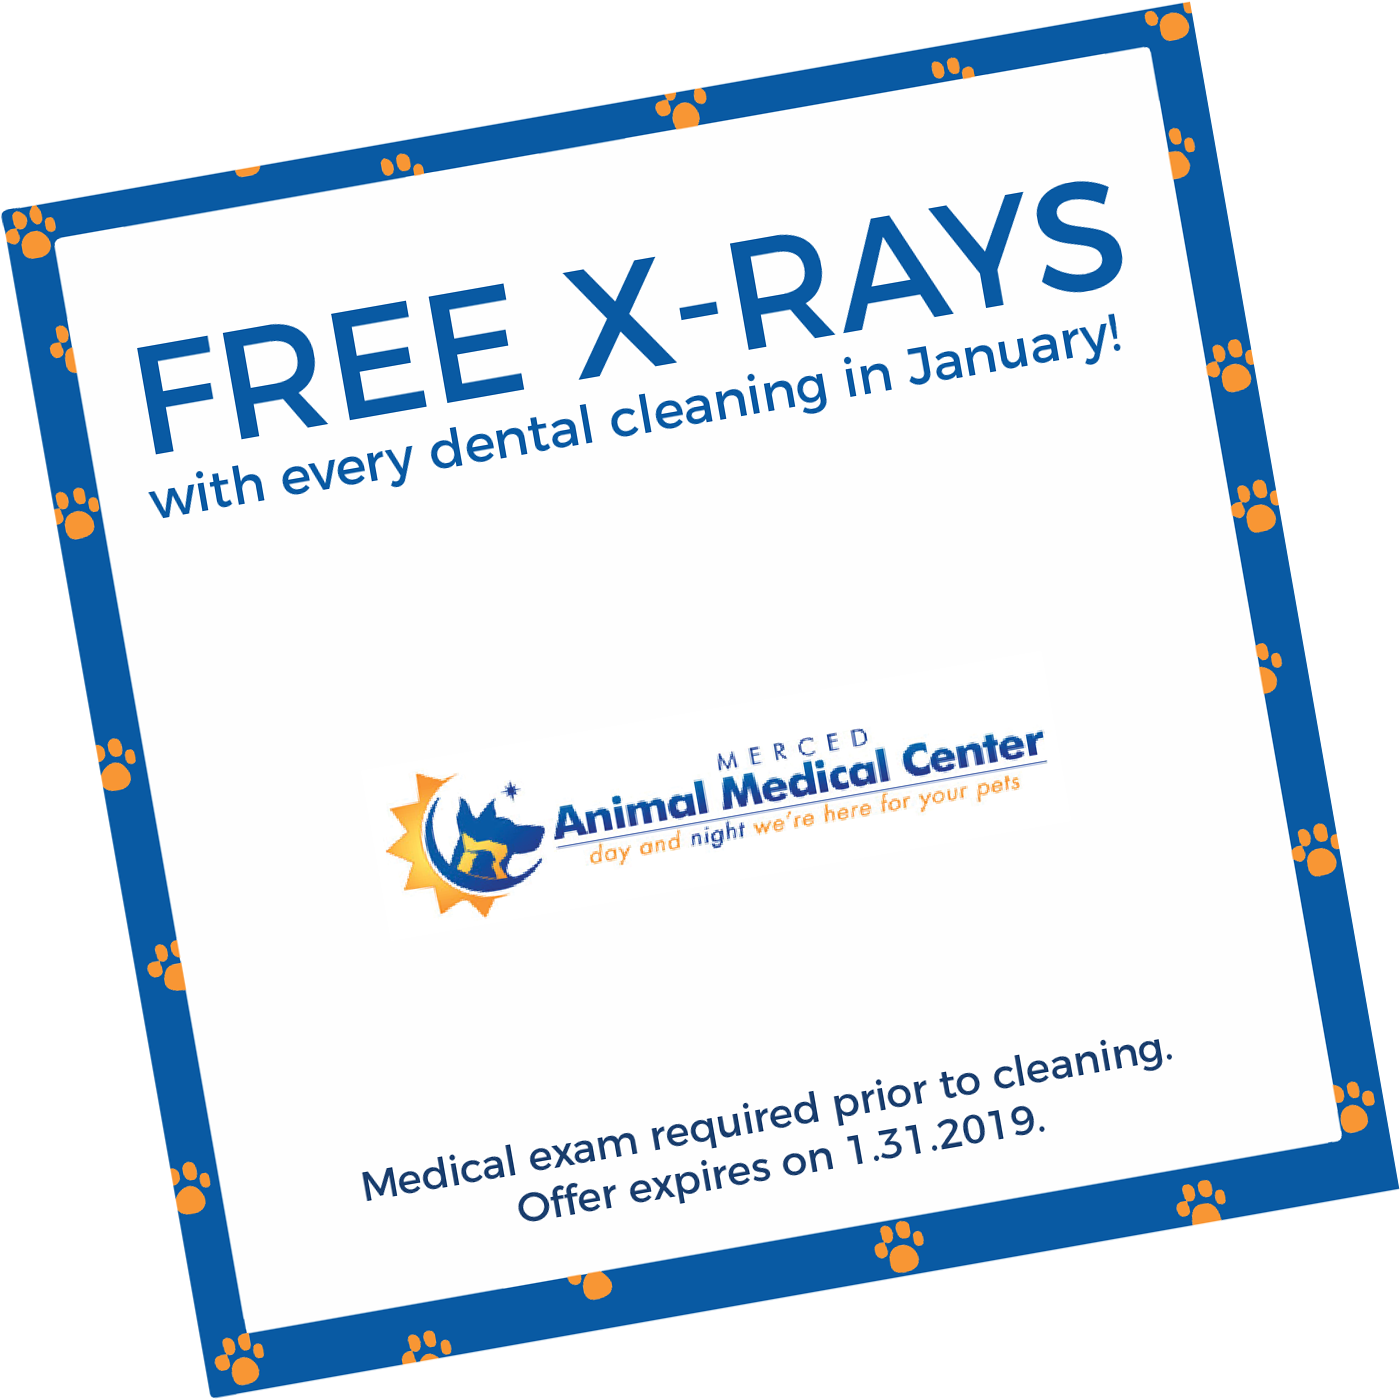 FREE X-Rays with every dental cleaning in January. Medical exam required prior to cleaning. Offer expires on 1/31/10